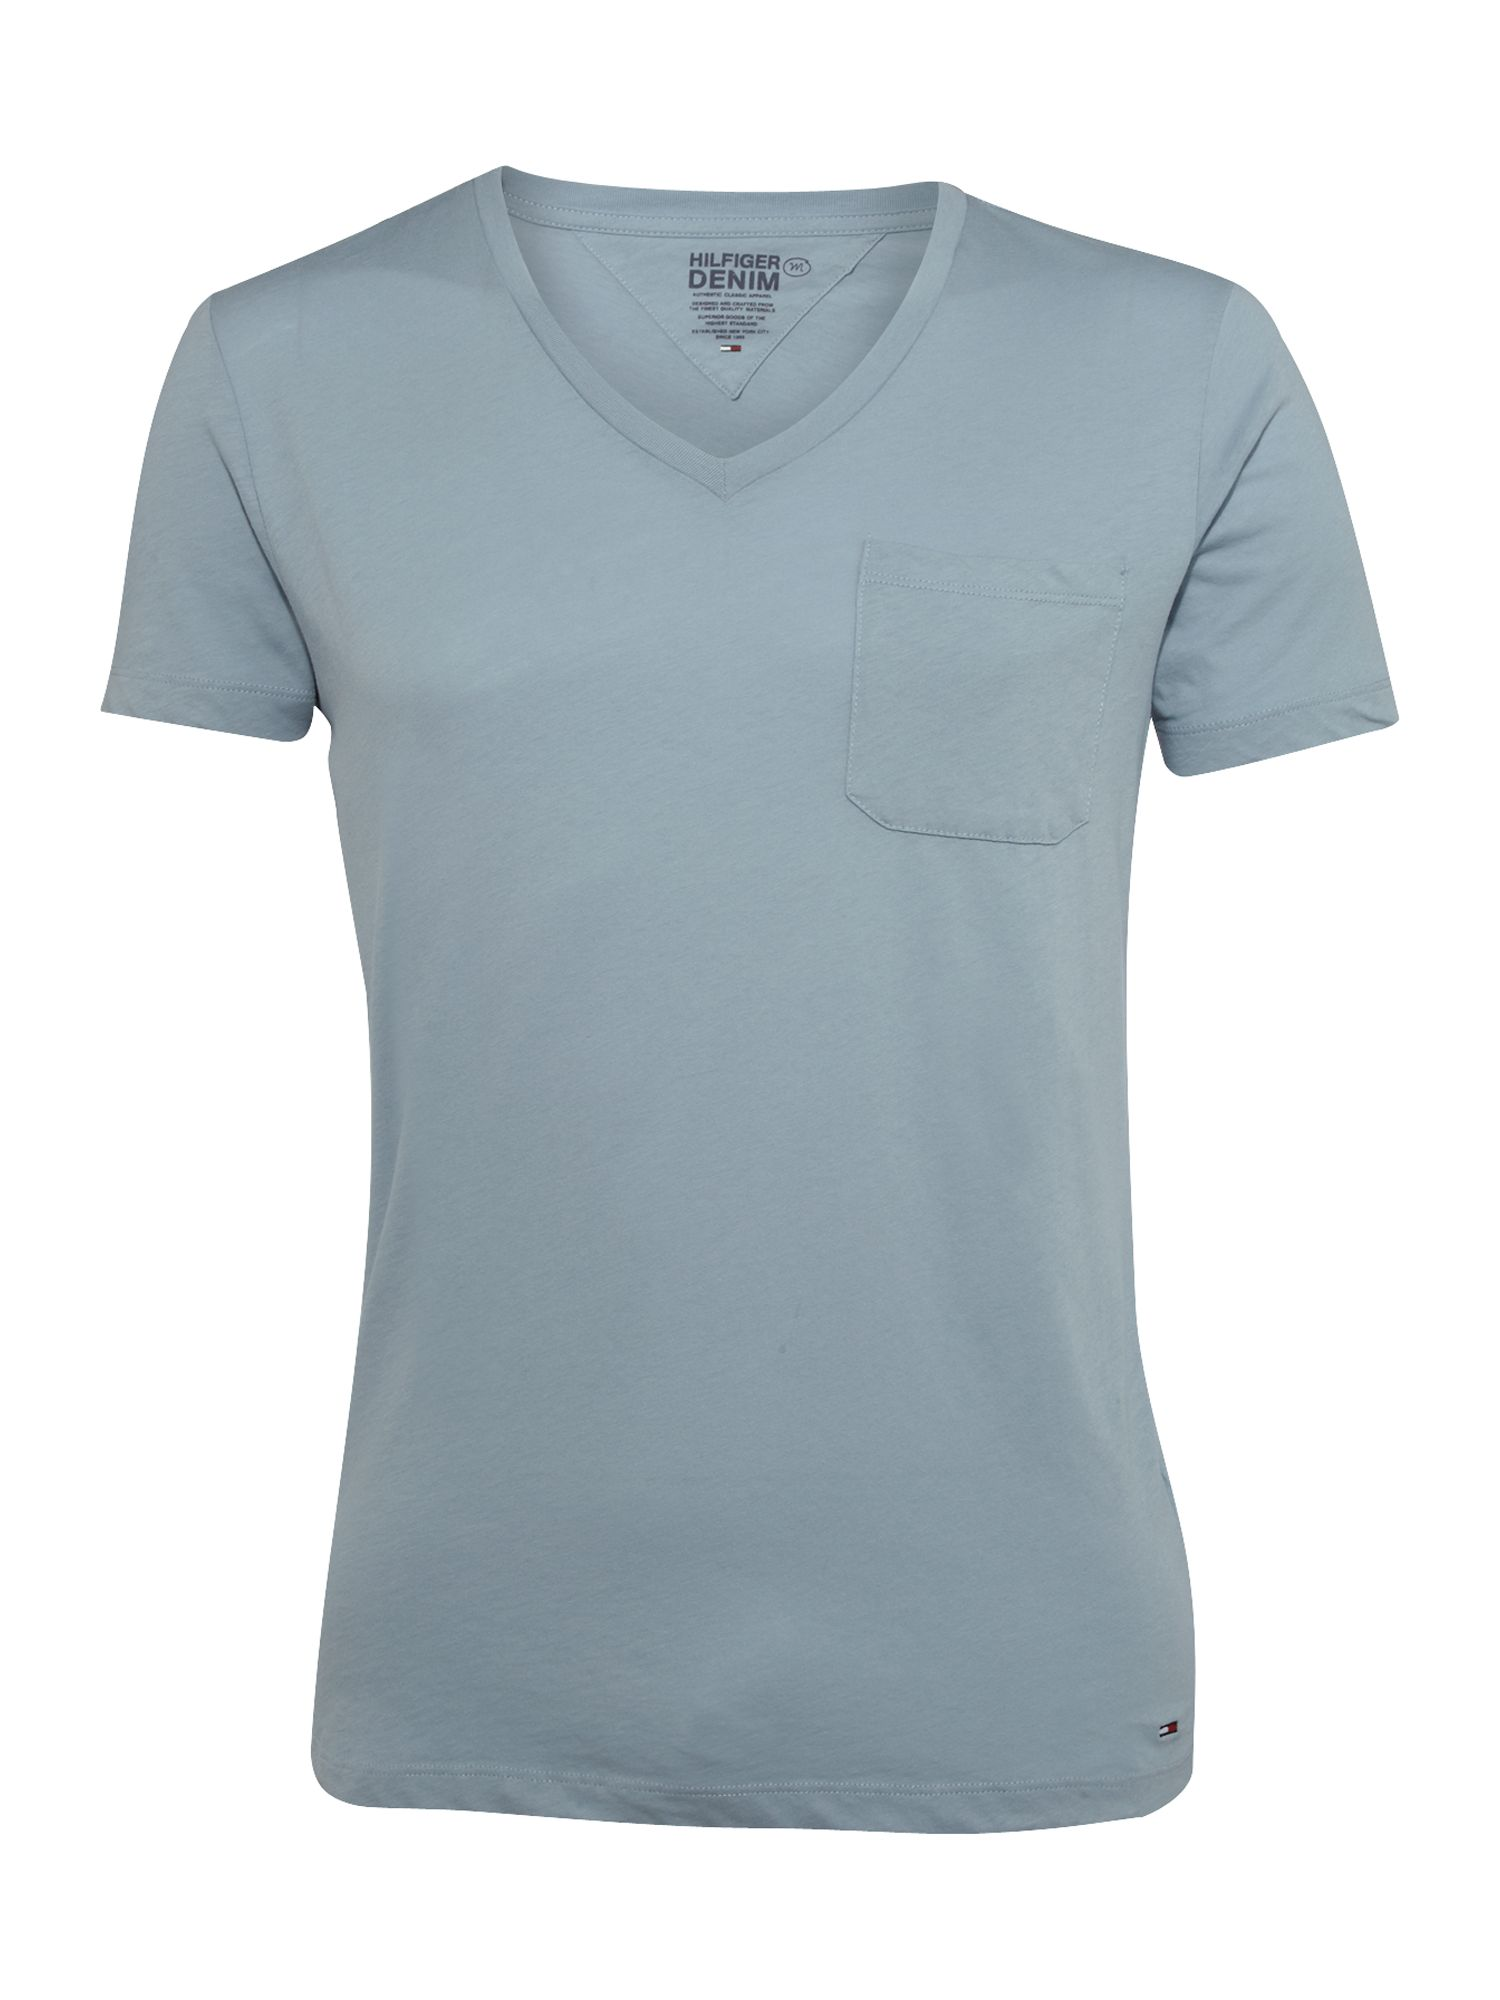 T Shirts reviews, cheap prices, uk delivery, compare prices